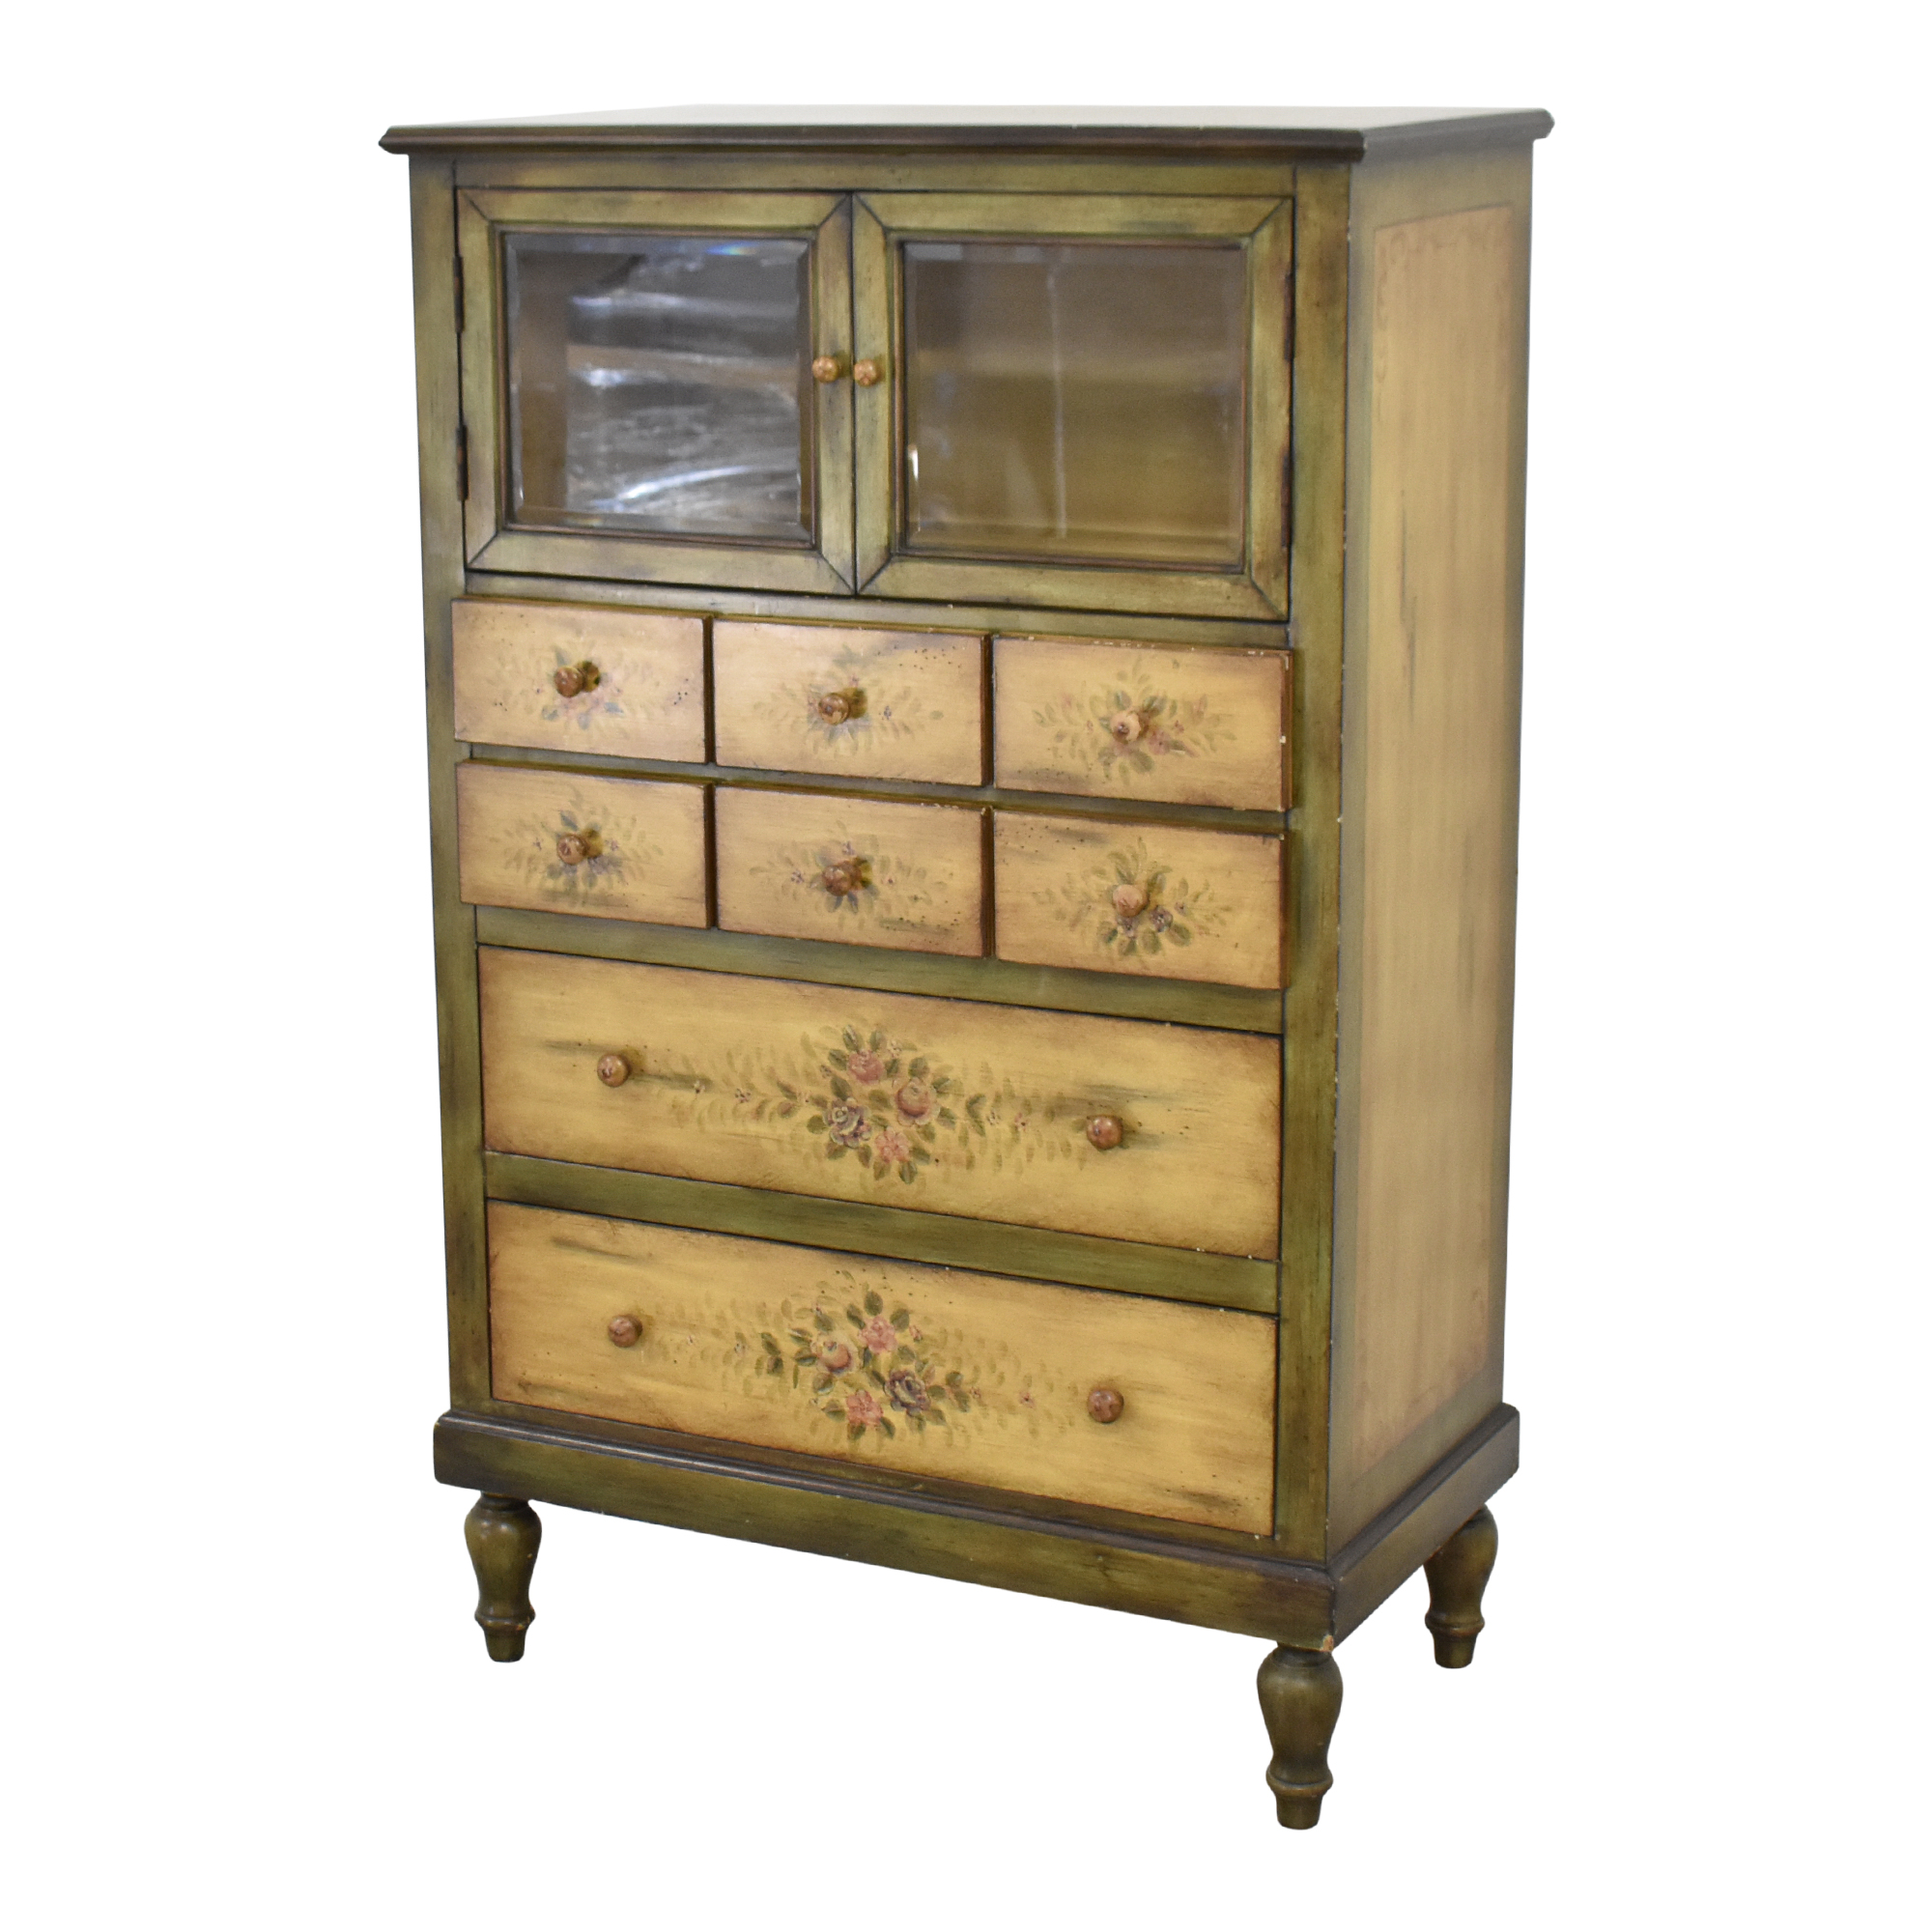 Peter Andrews Peter Andrews Vintage Style Painted Cabinet second hand